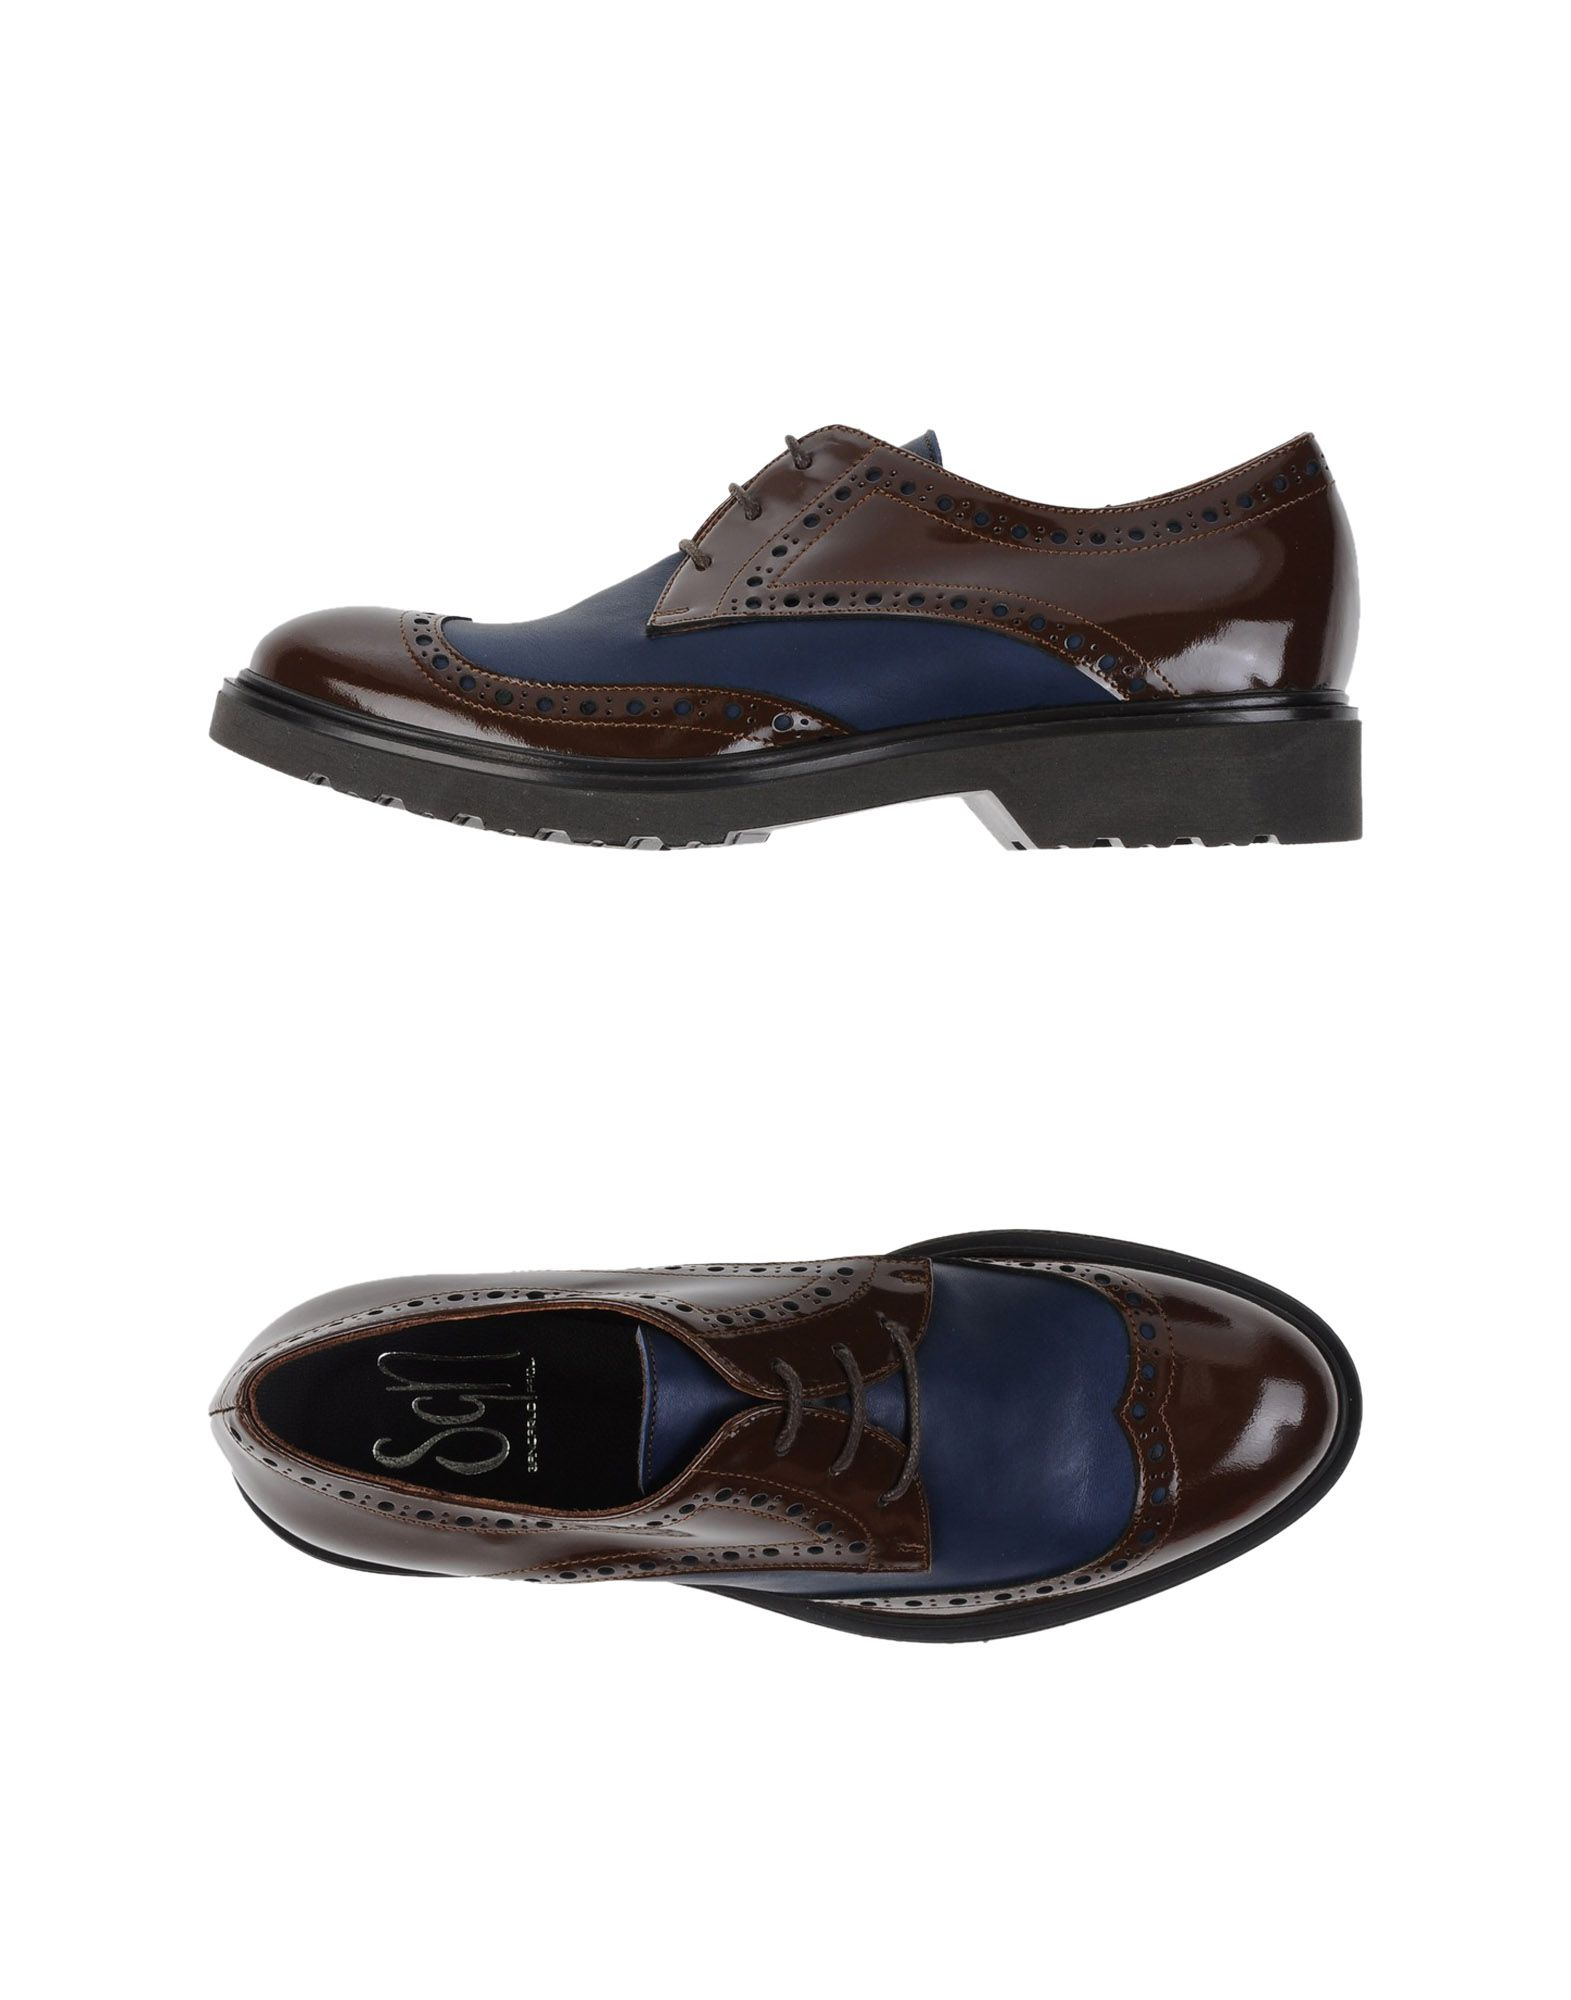 Sgn Giancarlo Paoli Chaussures À Lacets iveLbB